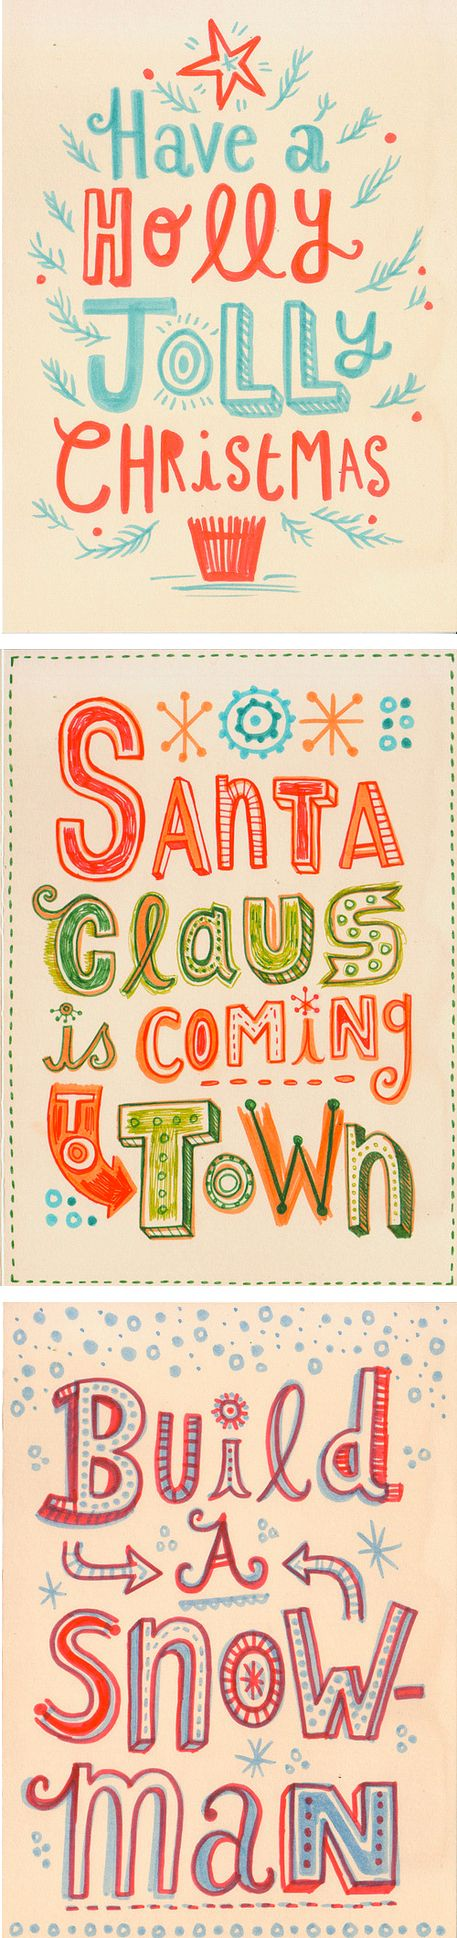 hand lettered Christmas cards or posters